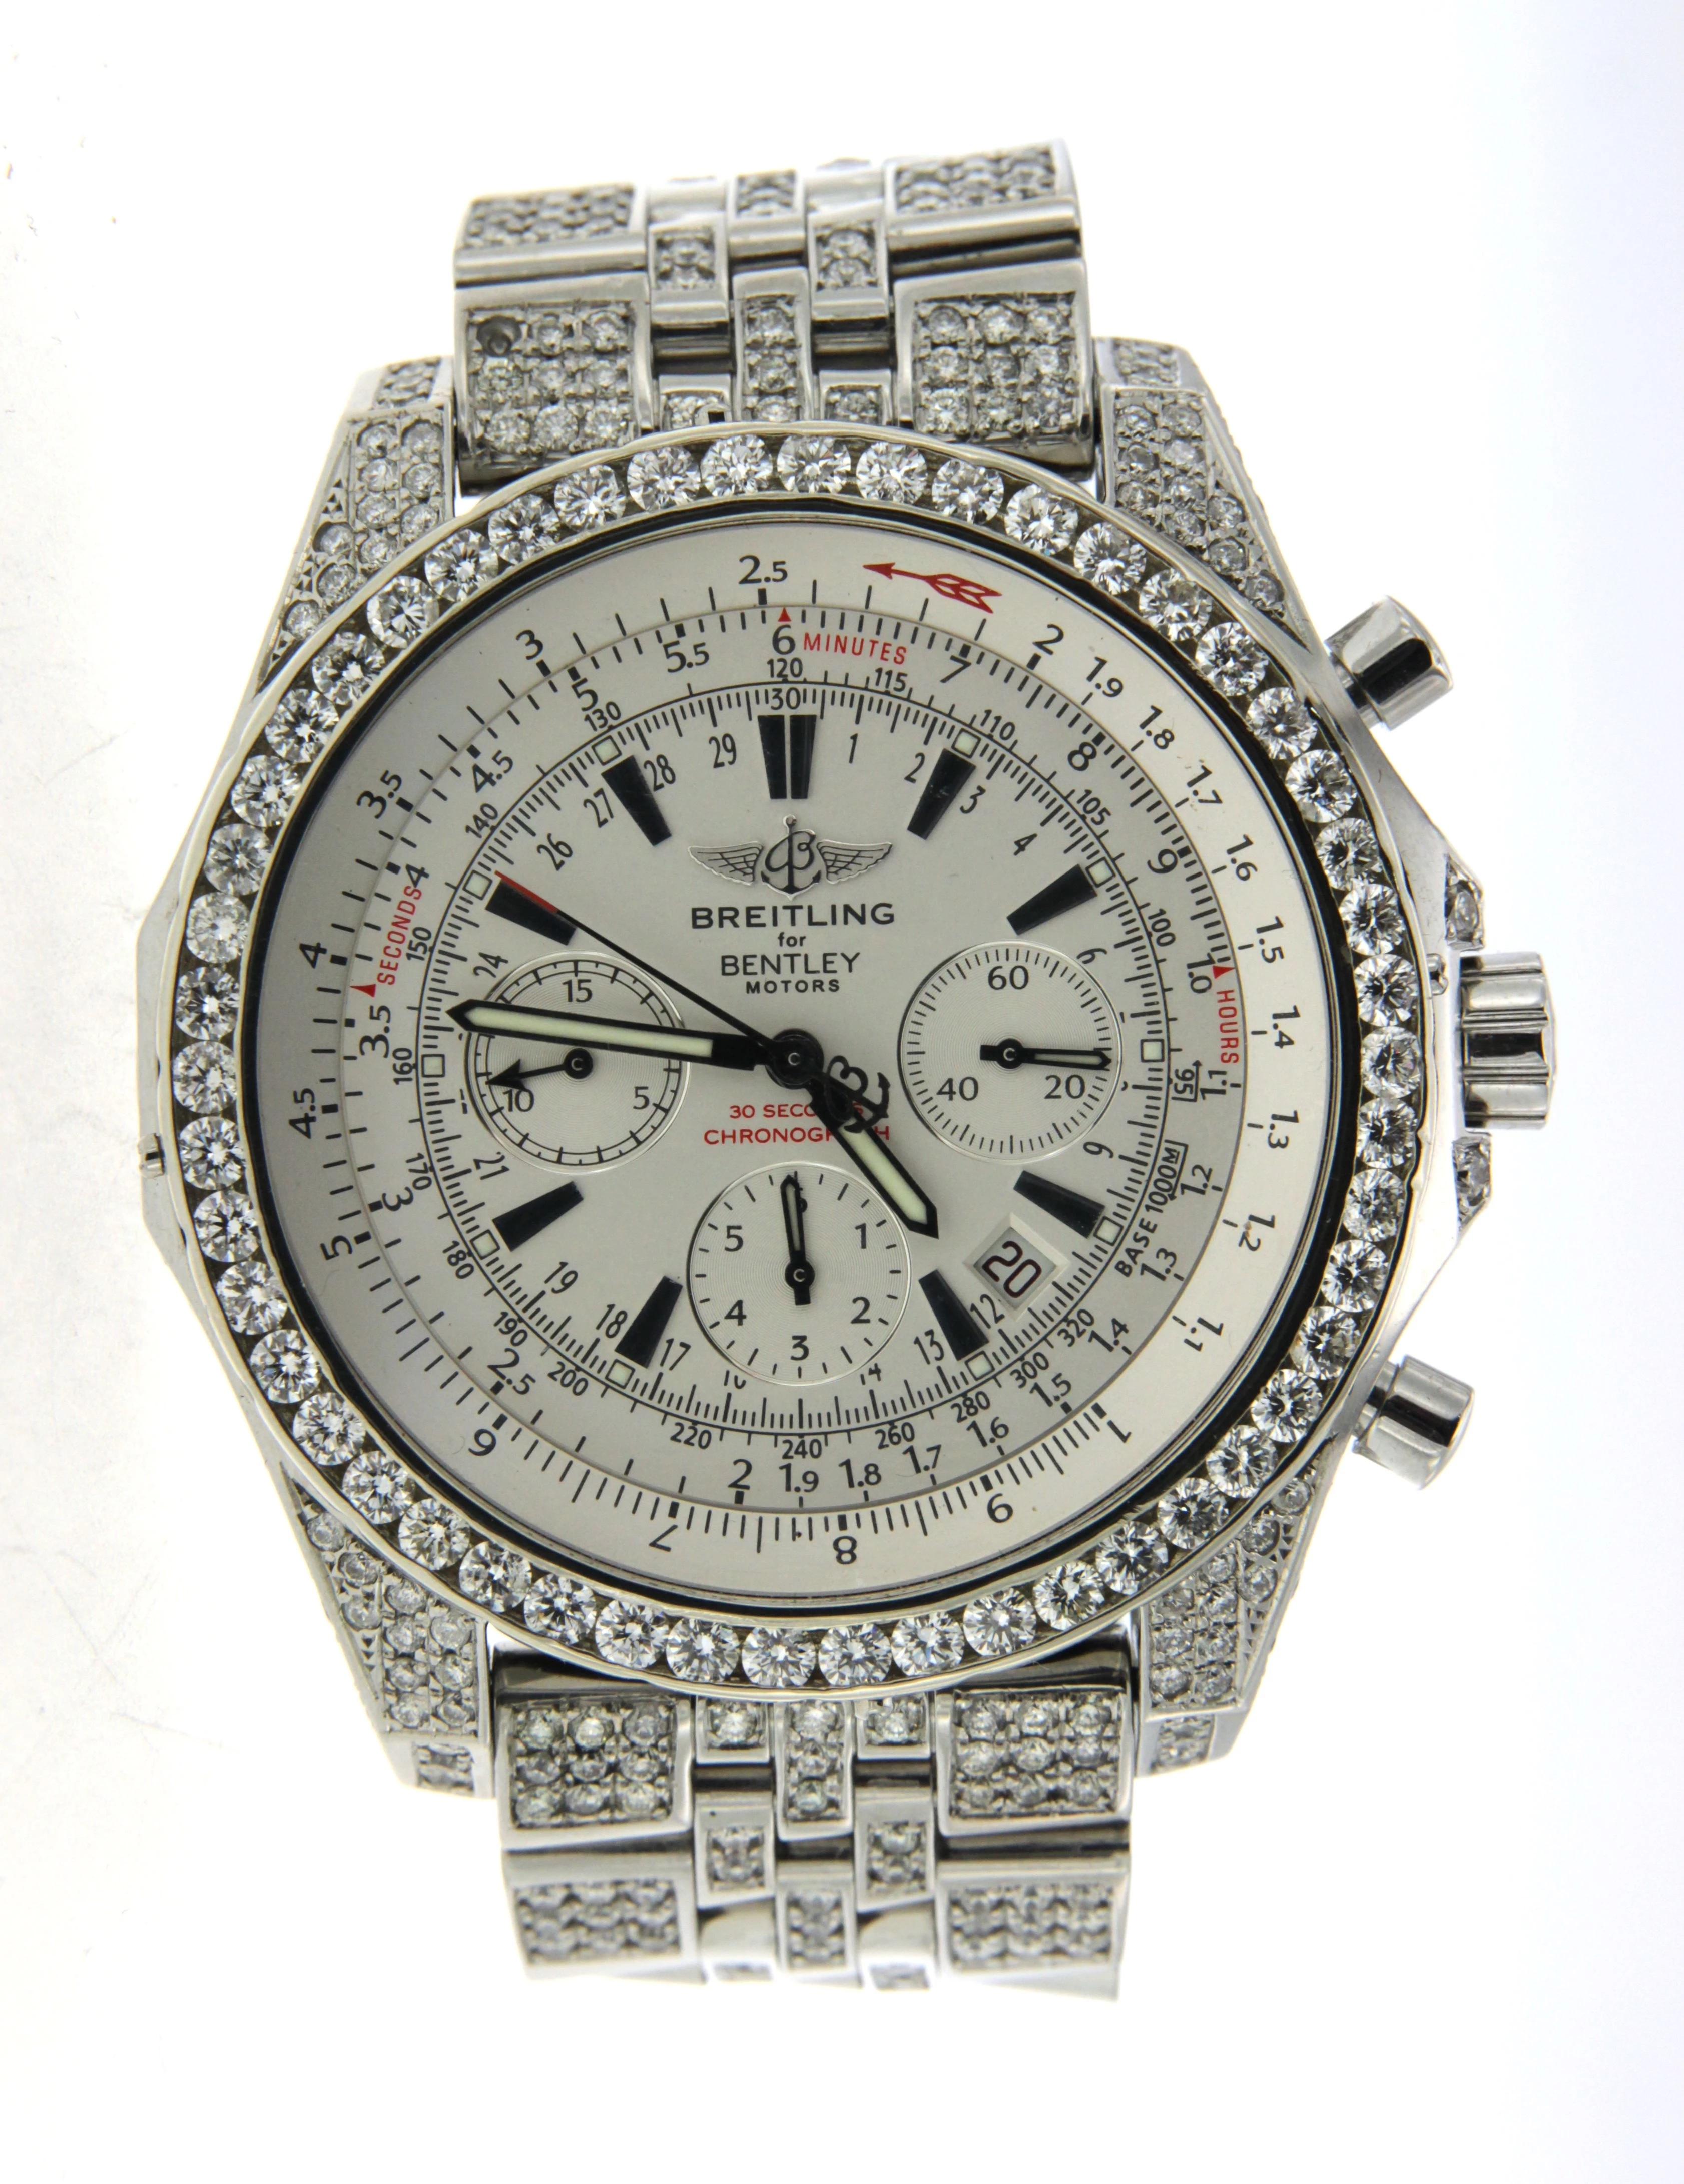 Fully Iced Out Real Diamond Breitling Bently Diamond Bezel, Case, Band 48mm Main Image